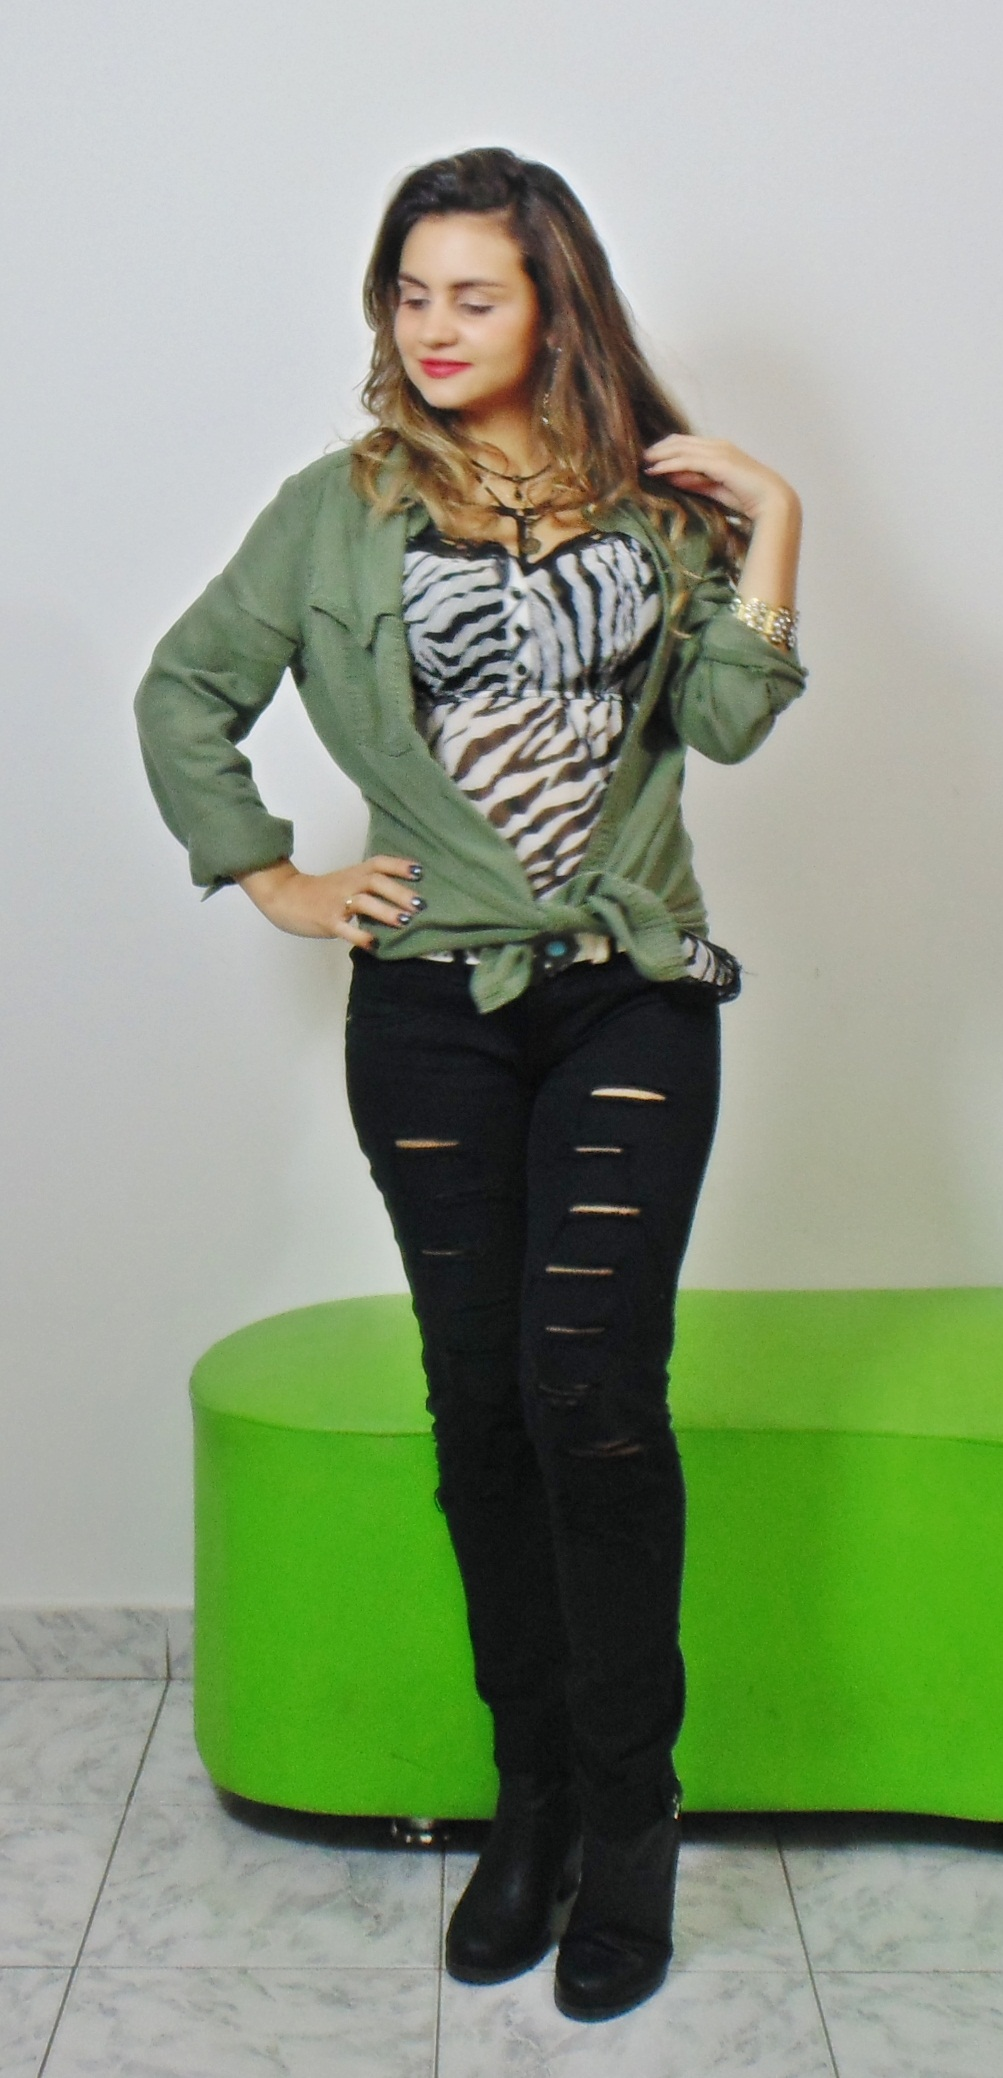 DSC02859 Look da Ká:  Camisa Militar + Jeans Destroyed